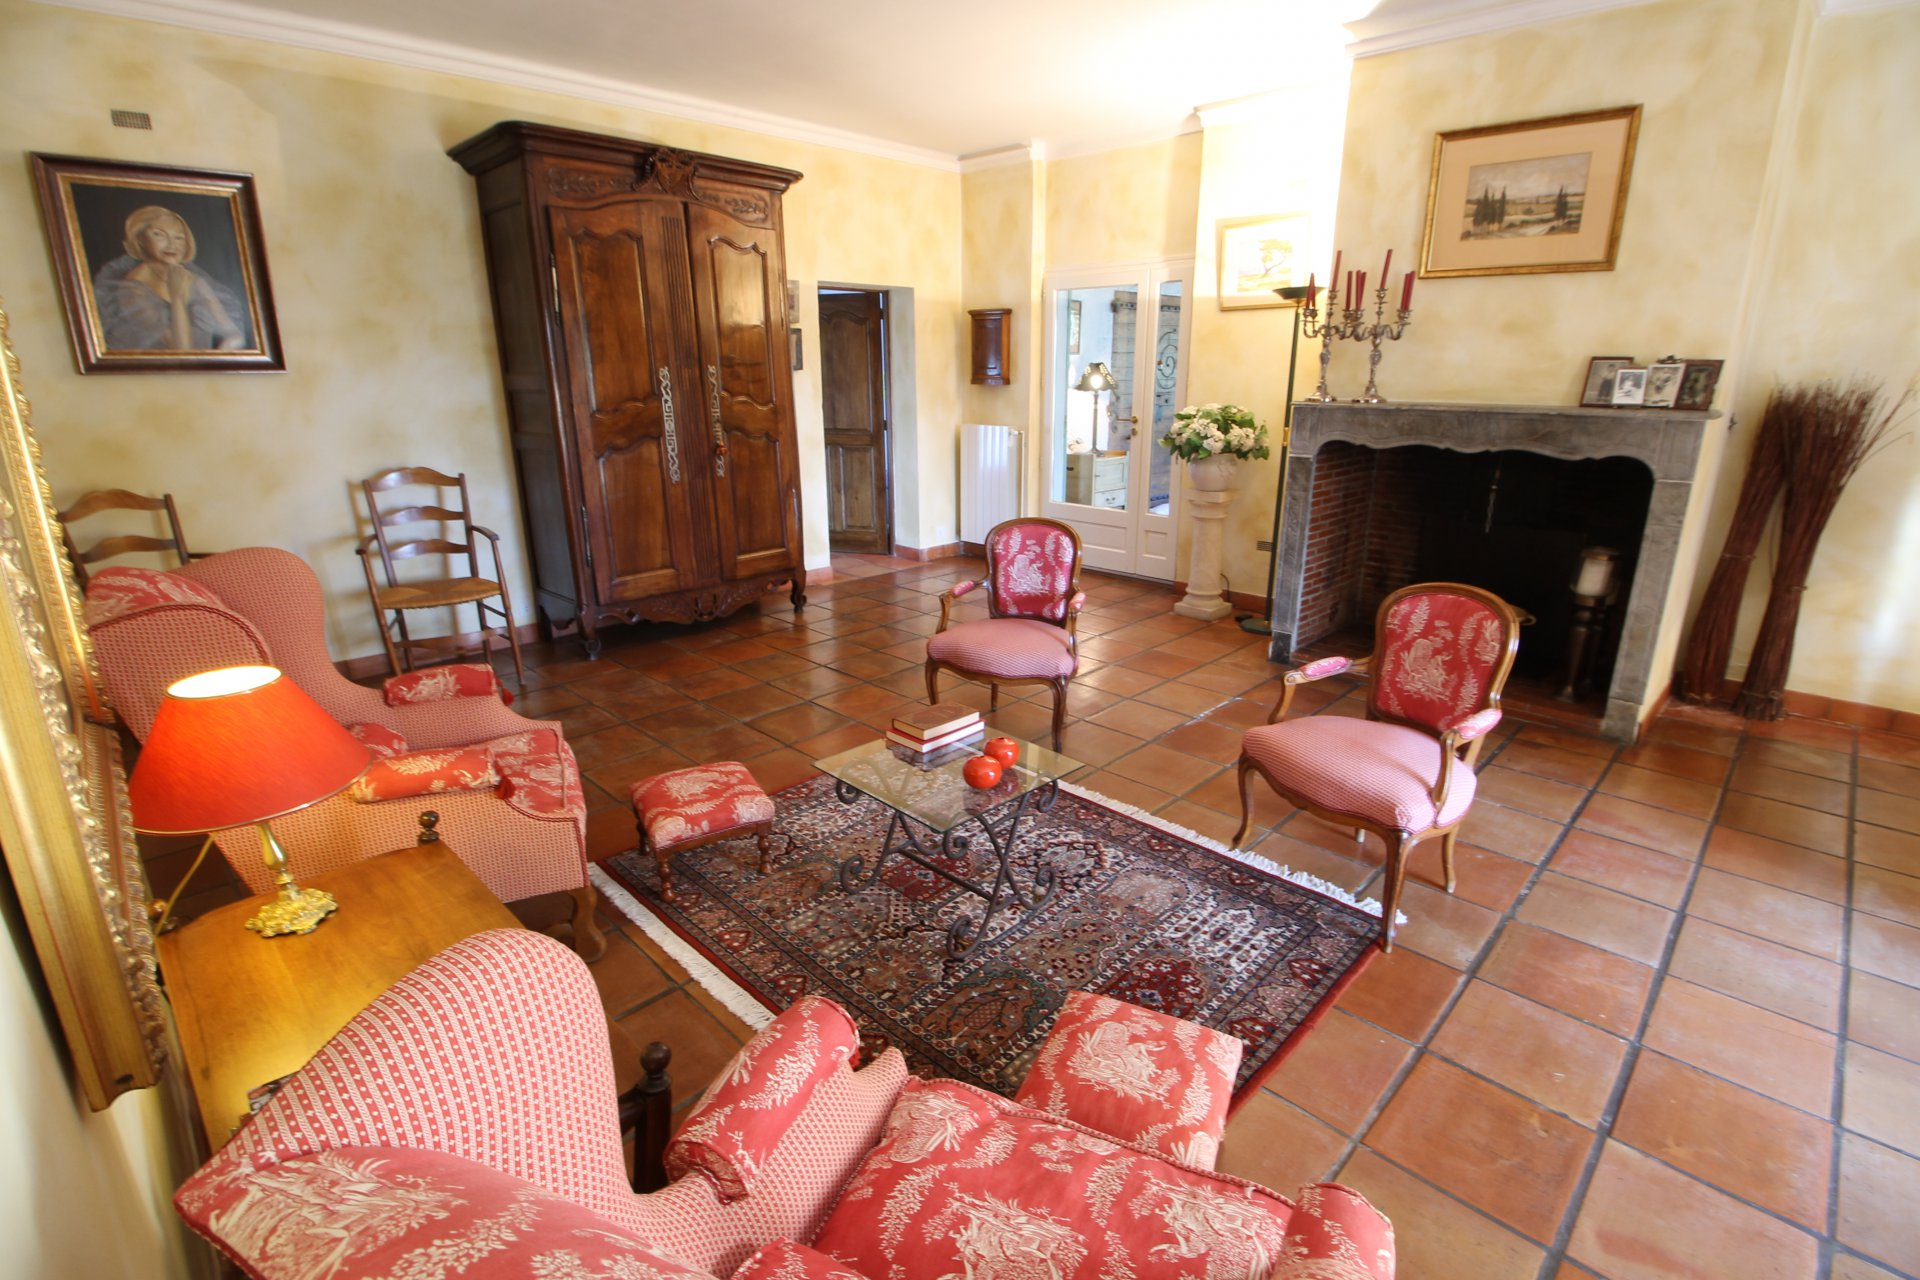 6 bedroom stonebuilt farmhouse for sale near Arles and Alpilles